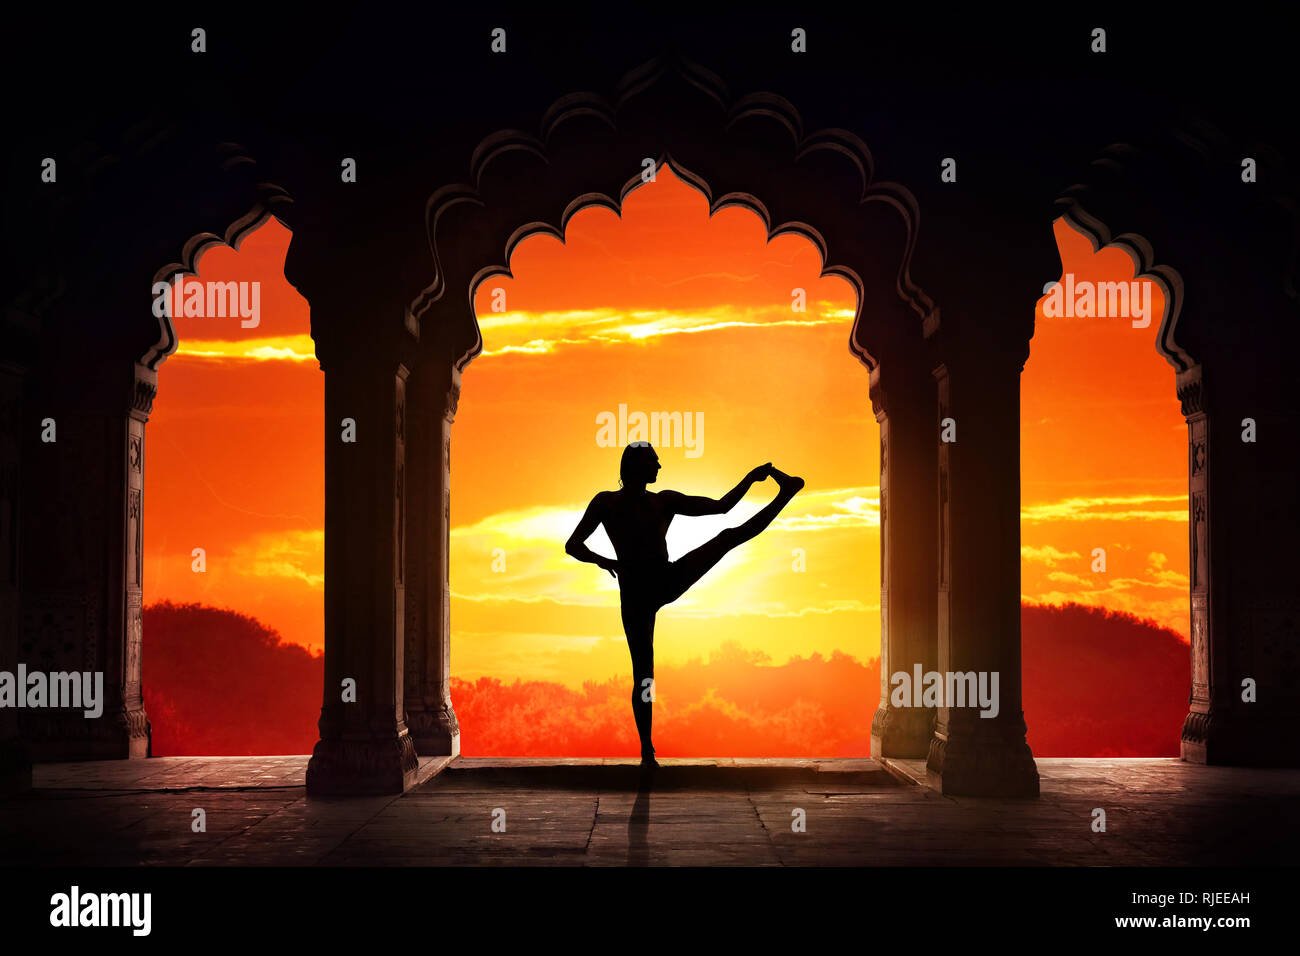 Man silhouette doing yoga advance balance asana in old temple at orange sunset sky background - Stock Image